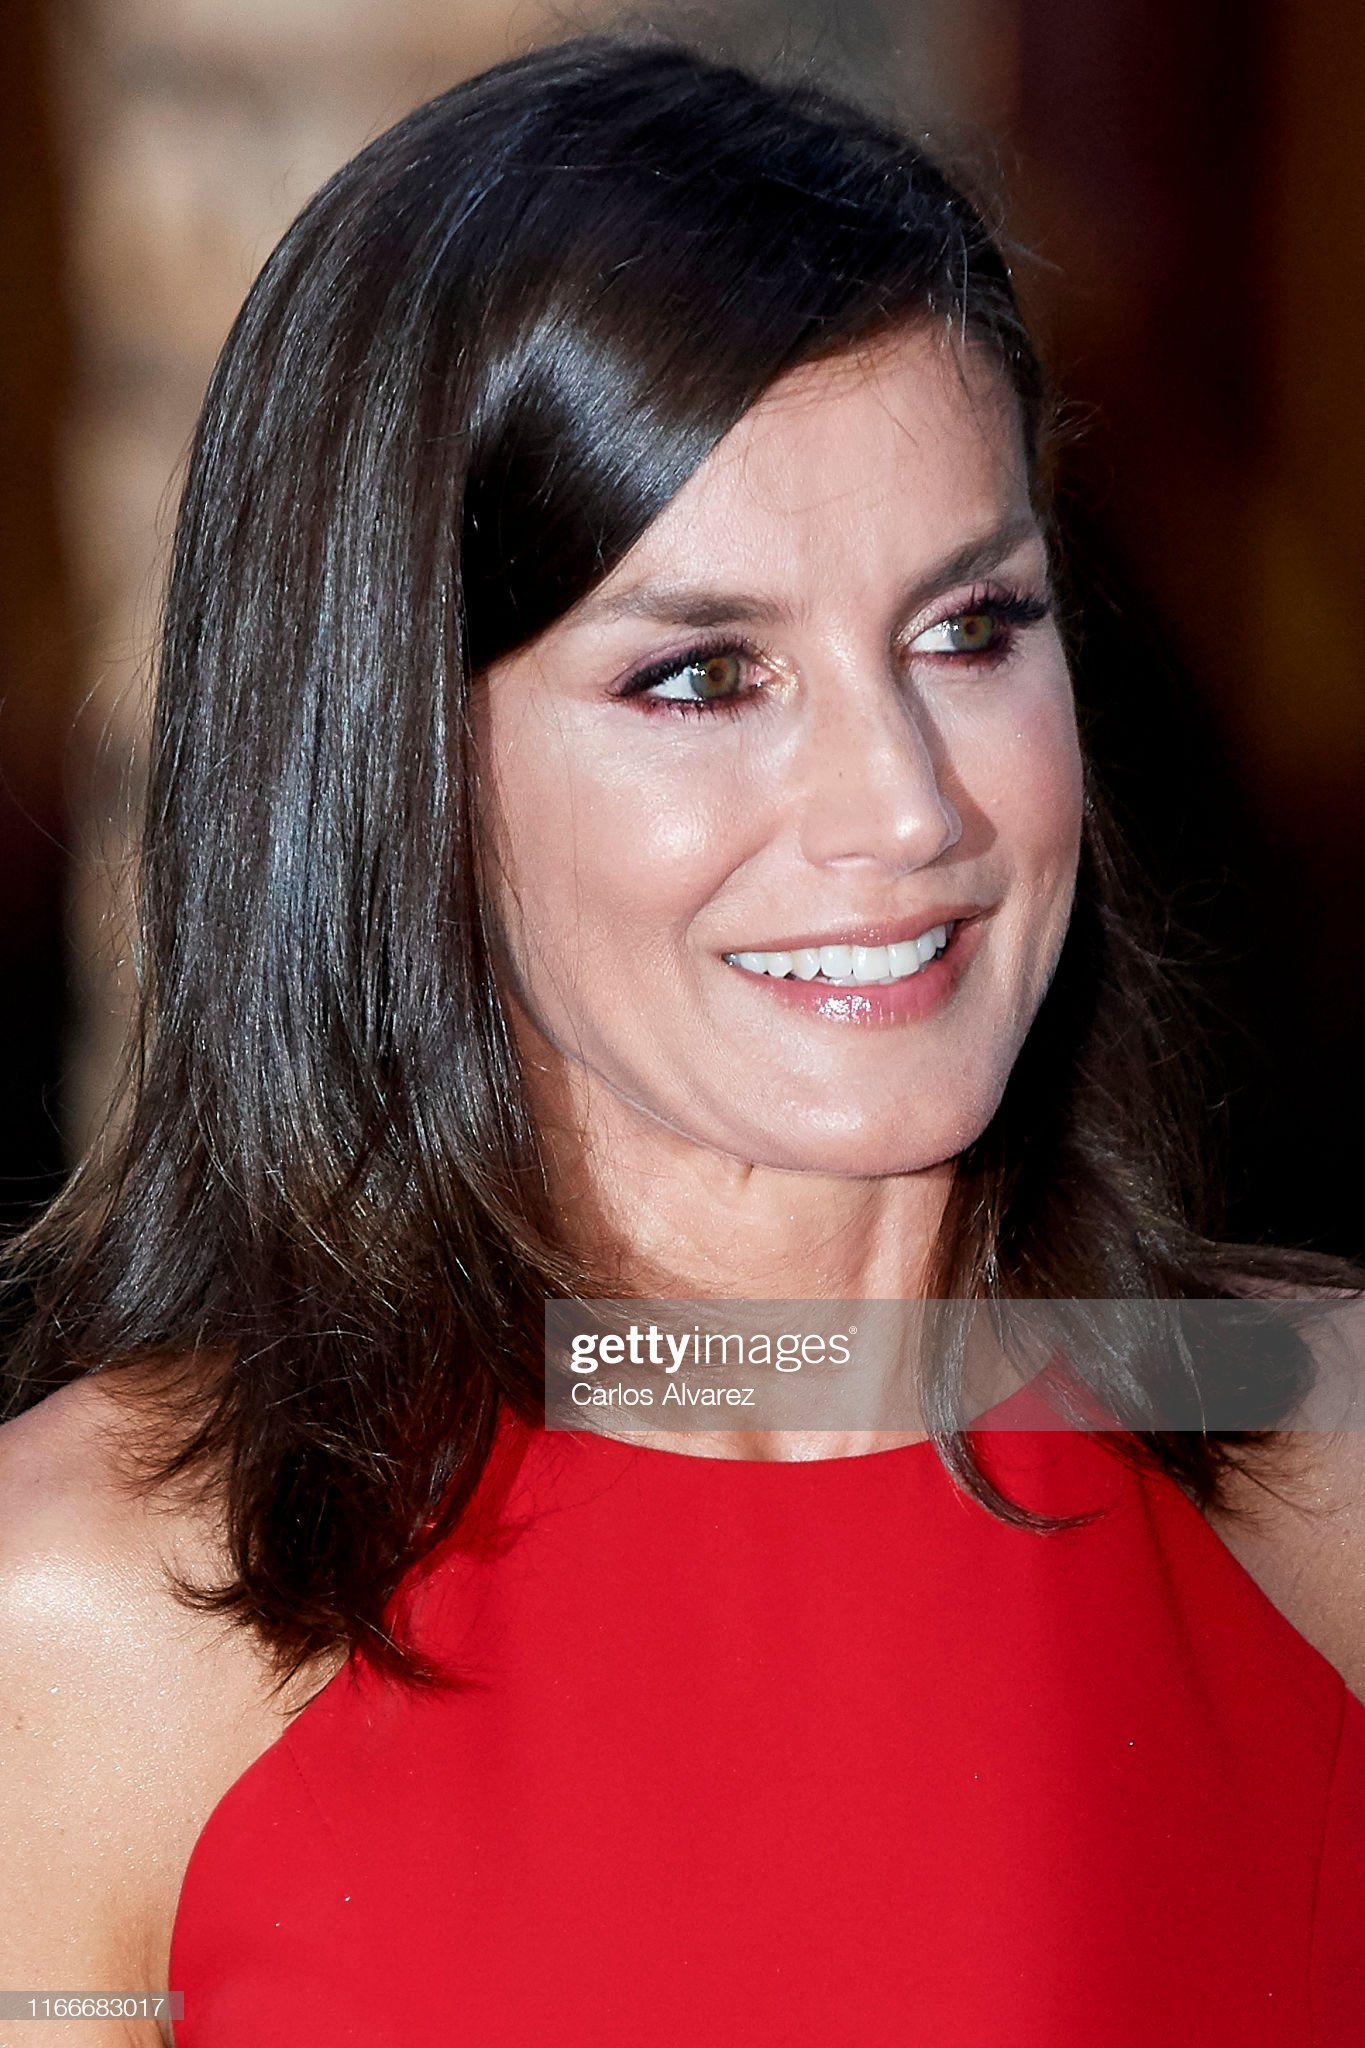 https://media.gettyimages.com/photos/queen-letizia-of-spain-hosts-a-dinner-for-authorities-at-the-palace-picture-id1166683017?s=2048x2048